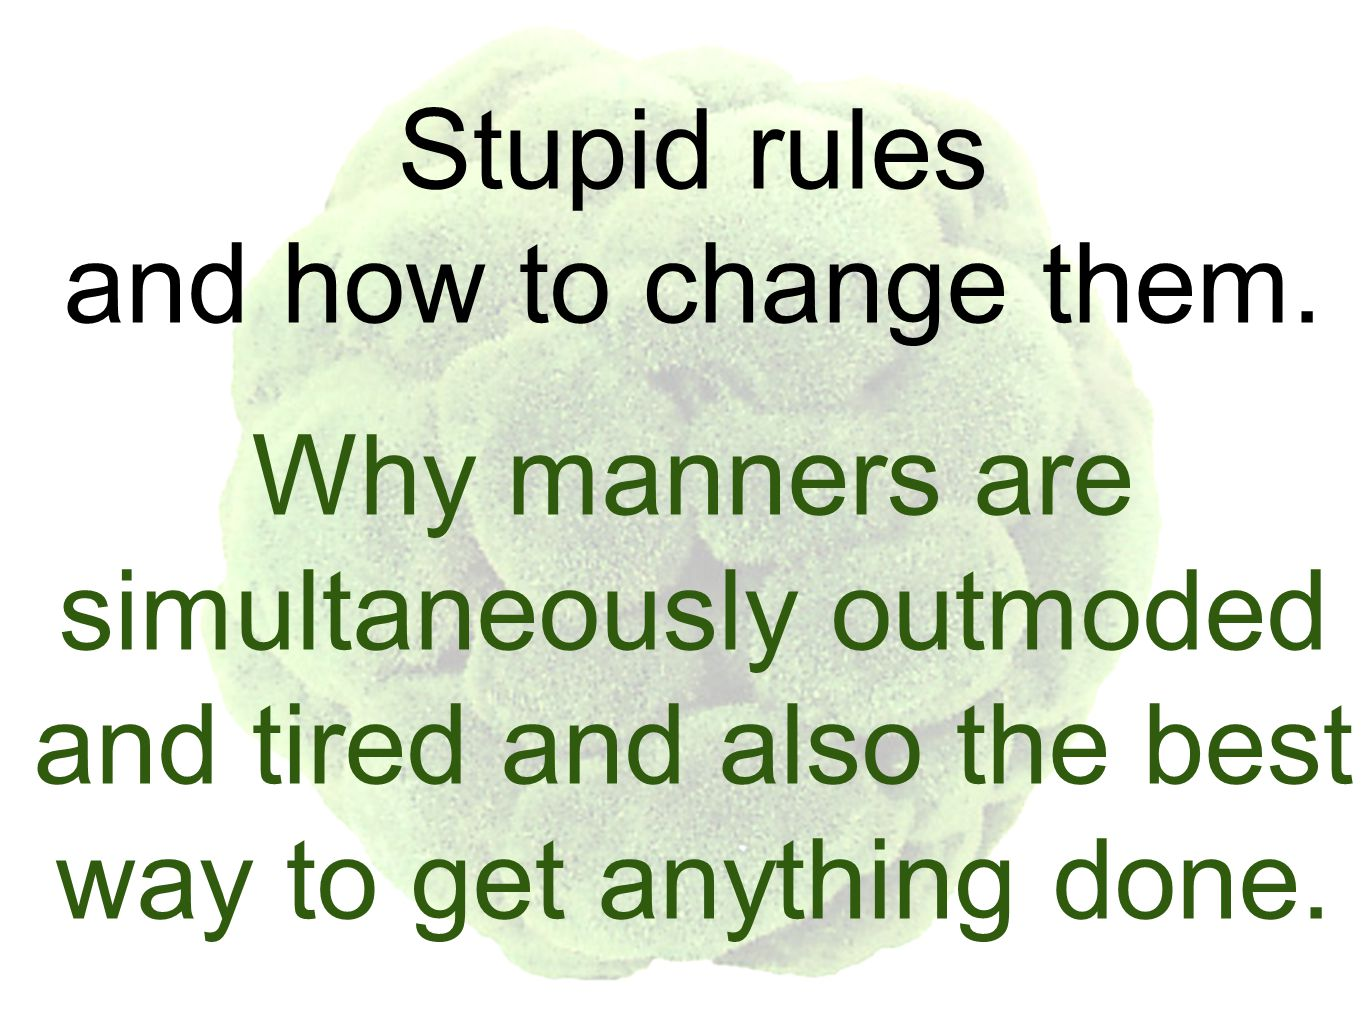 Stupid rules and how to change them.